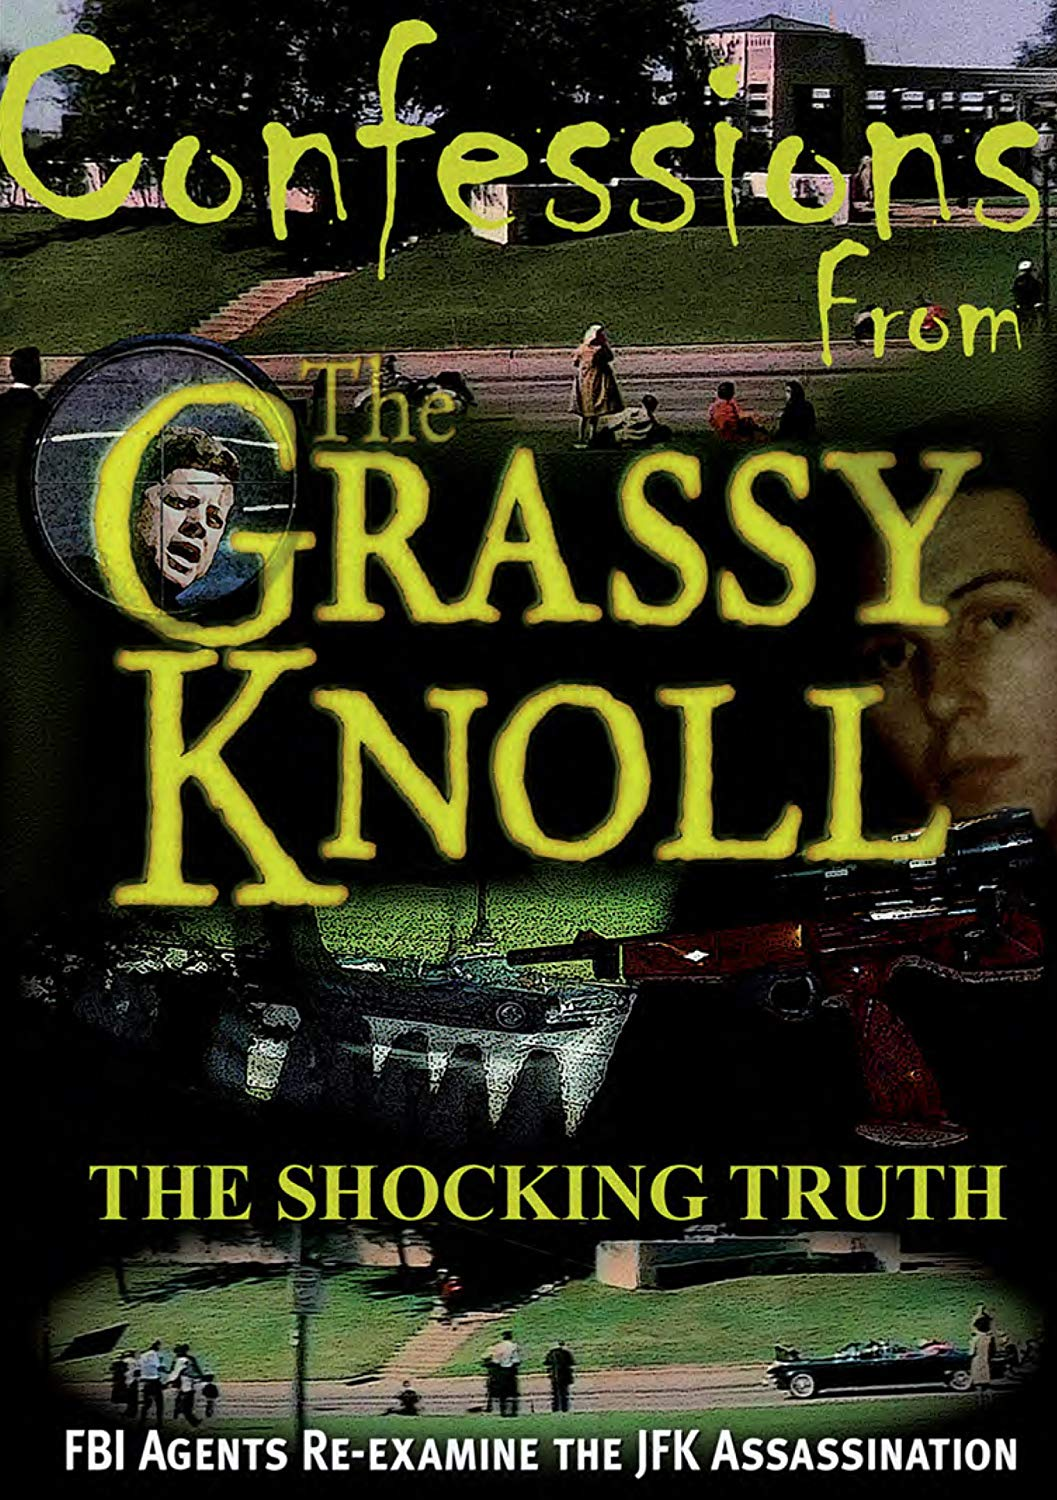 Confessions from the grassy knoll: the shocking truth [Videodisco digital]